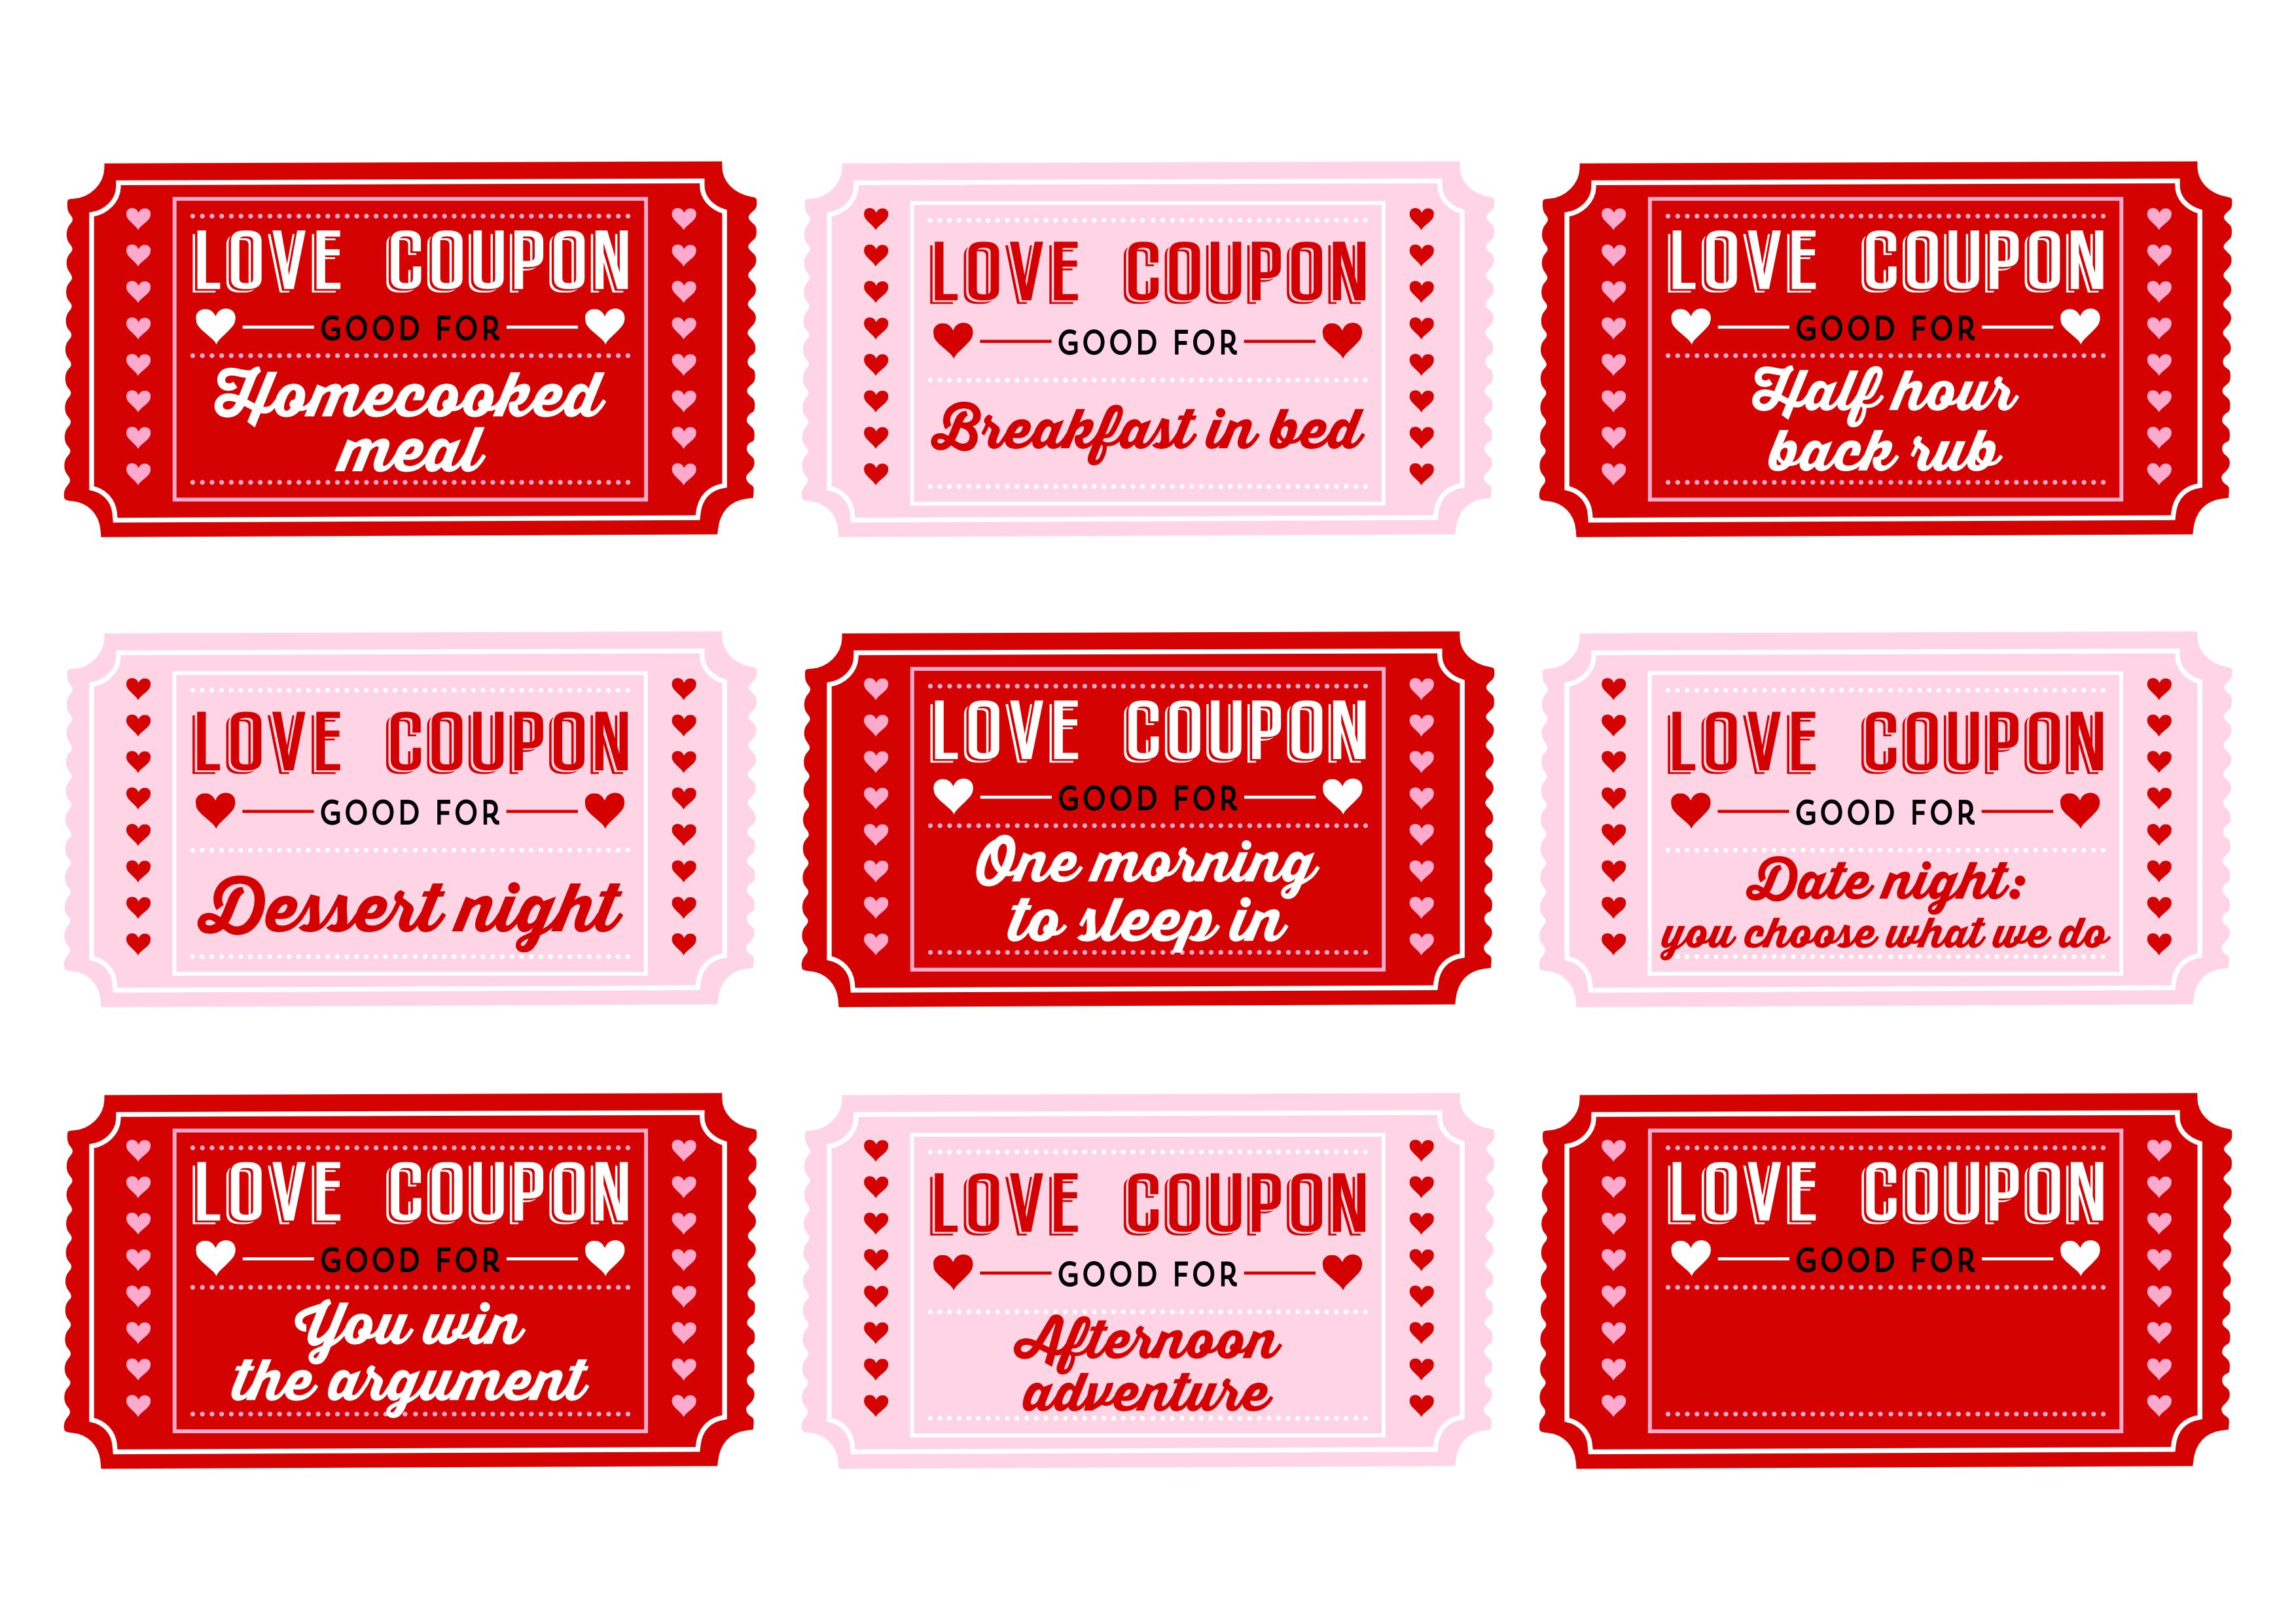 sex coupon template - free printable love coupons for couples on valentine 39 s day